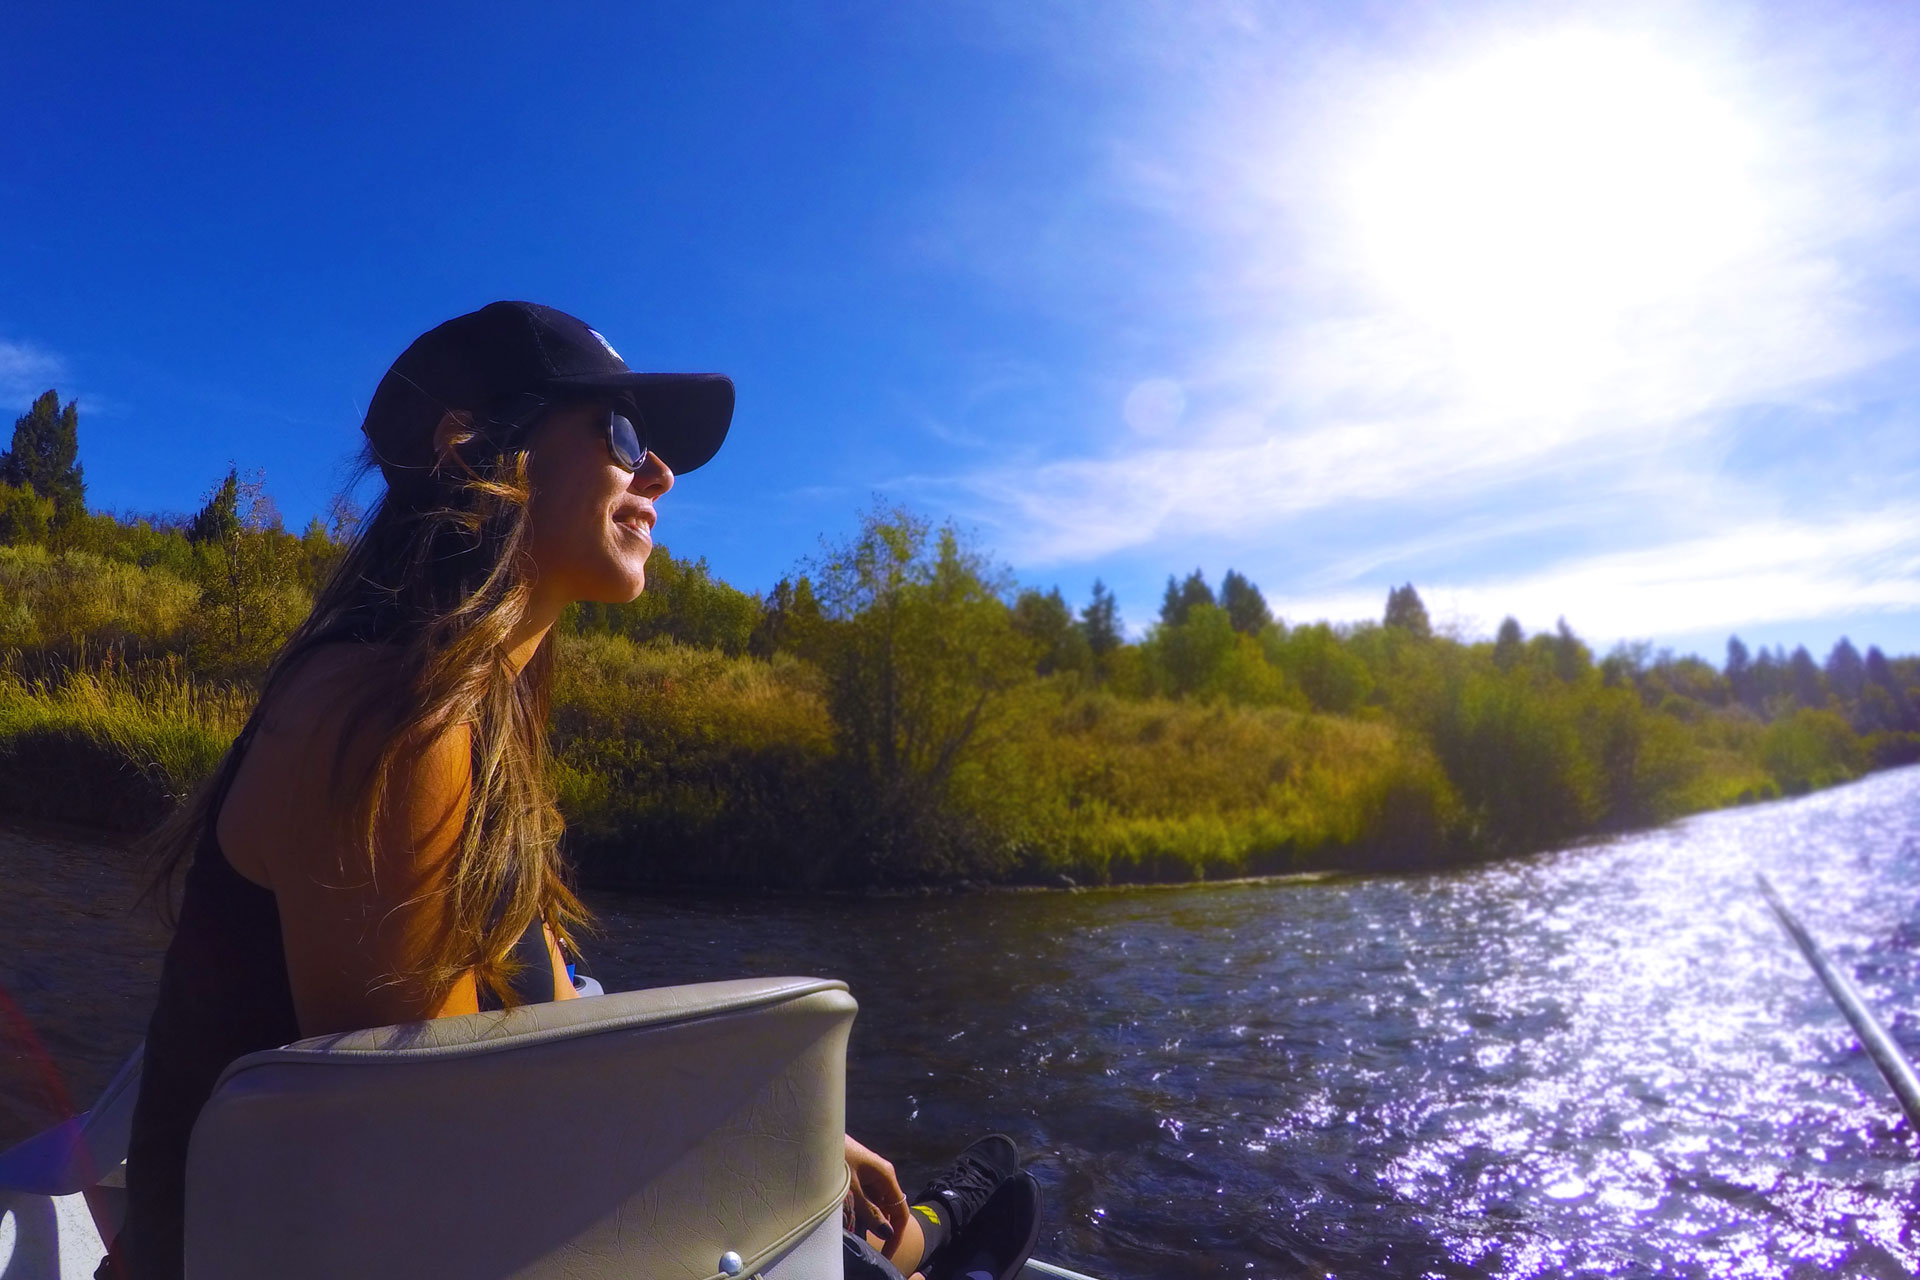 Boise Fly Shop TRR outfitters guide service